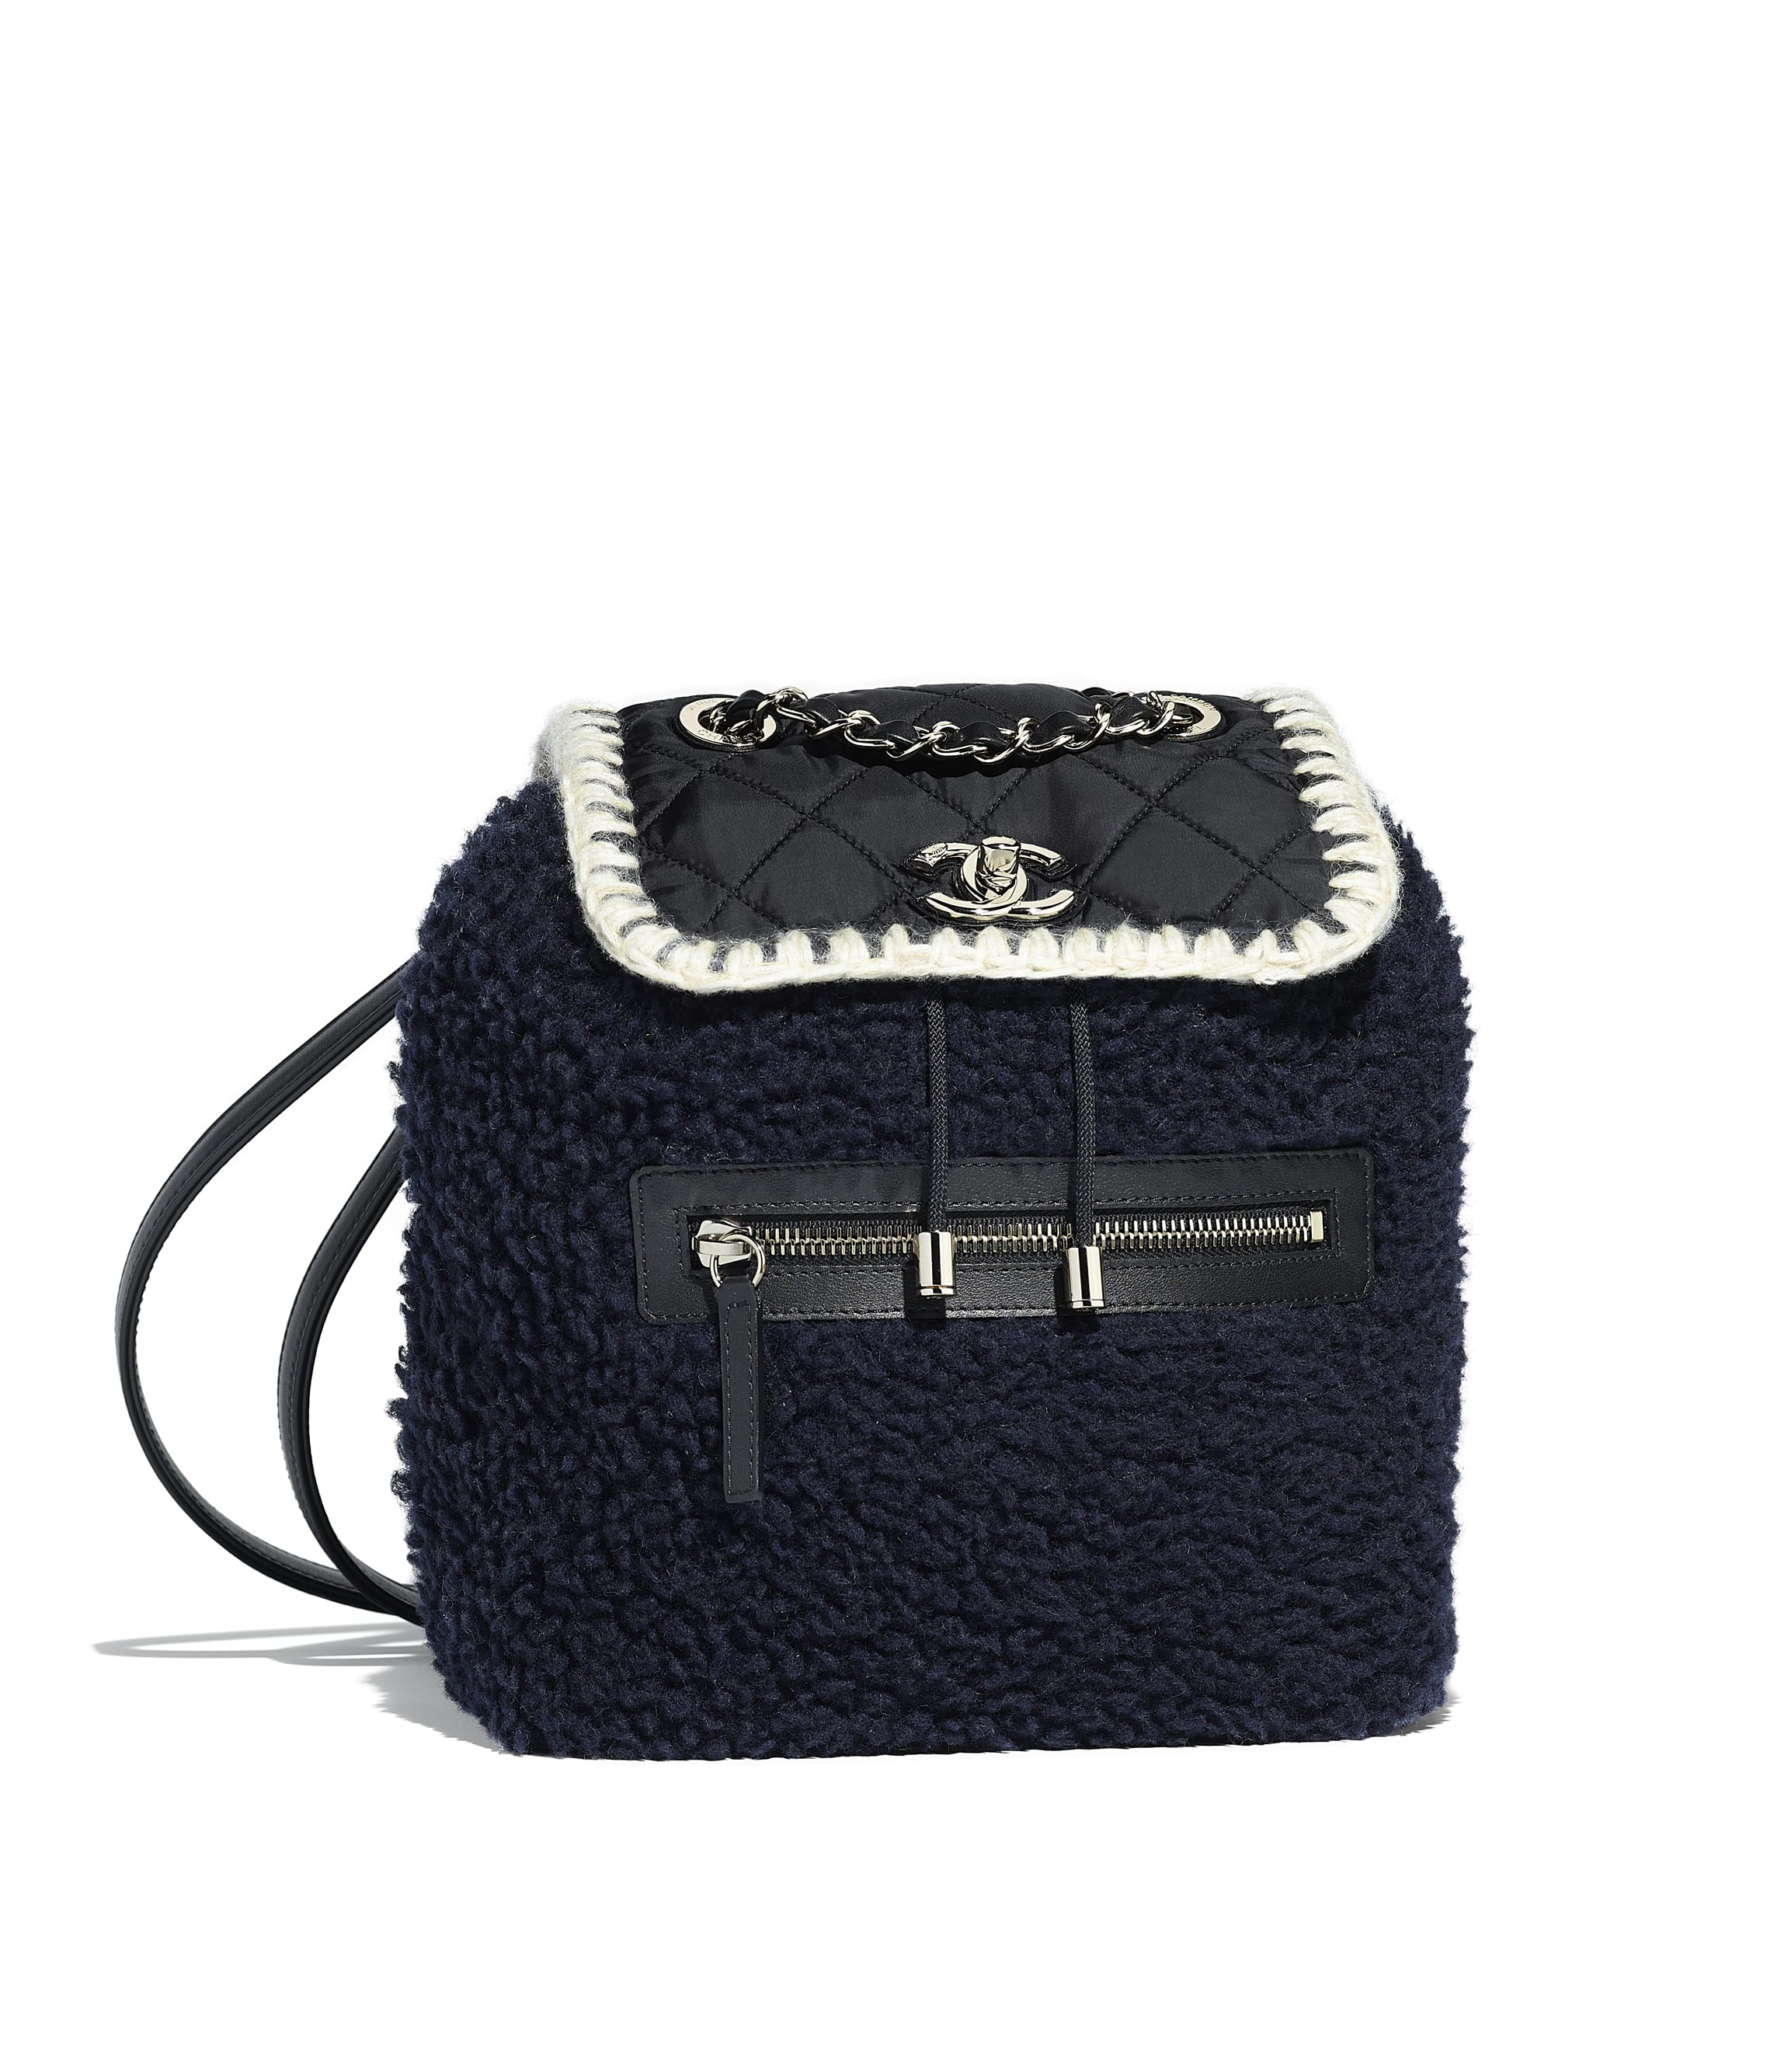 Coco Neige Collection - Handbags - CHANEL 9ae101797d08